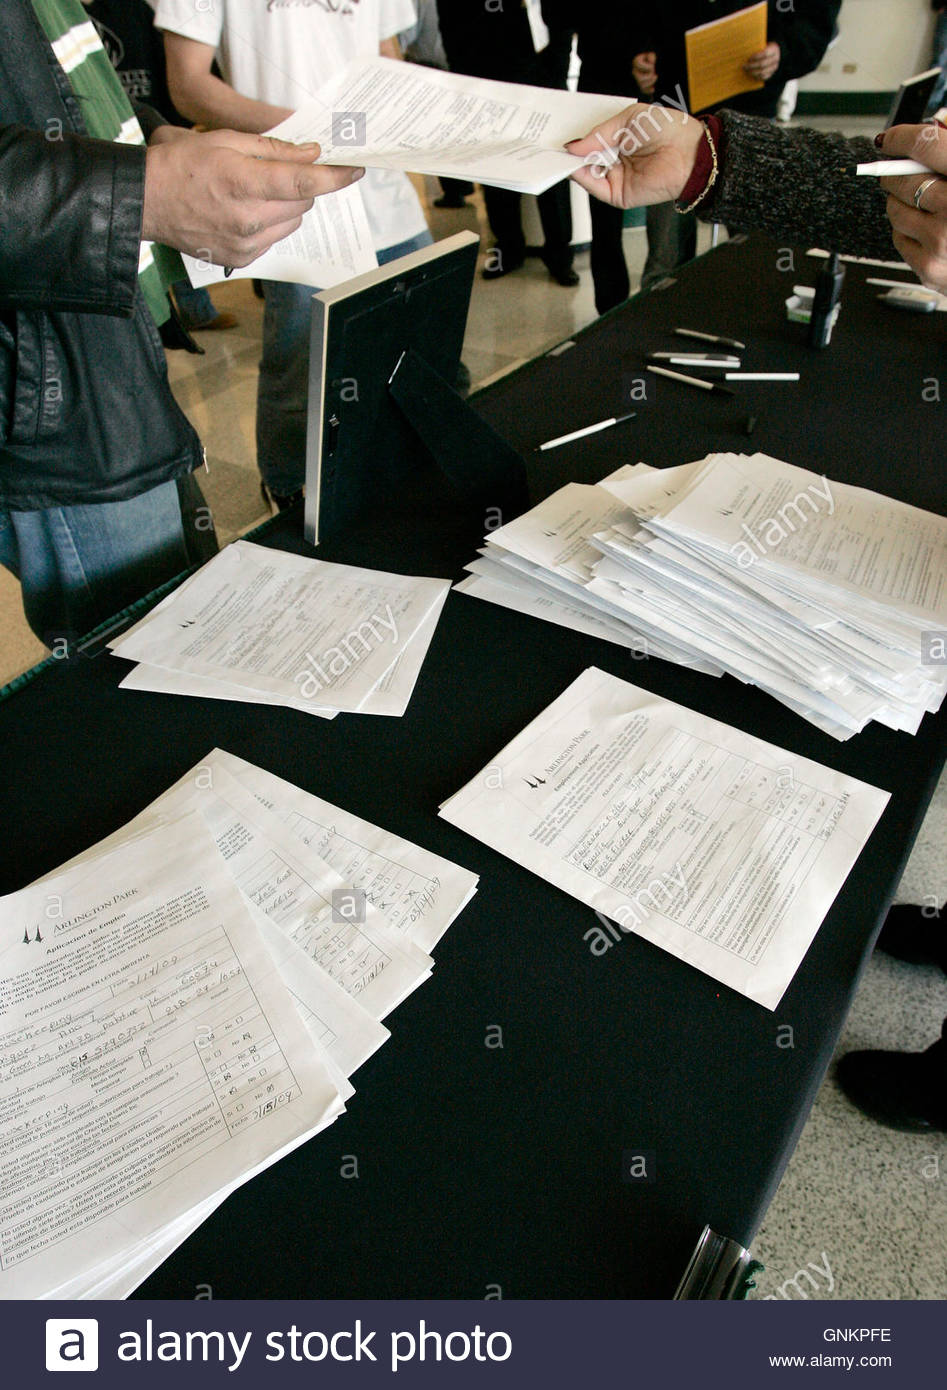 a job fair worker r receives an application from a man as a job fair worker r receives an application from a man as hundreds of people fill out applications for 300 400 temporary positions during a job fair at